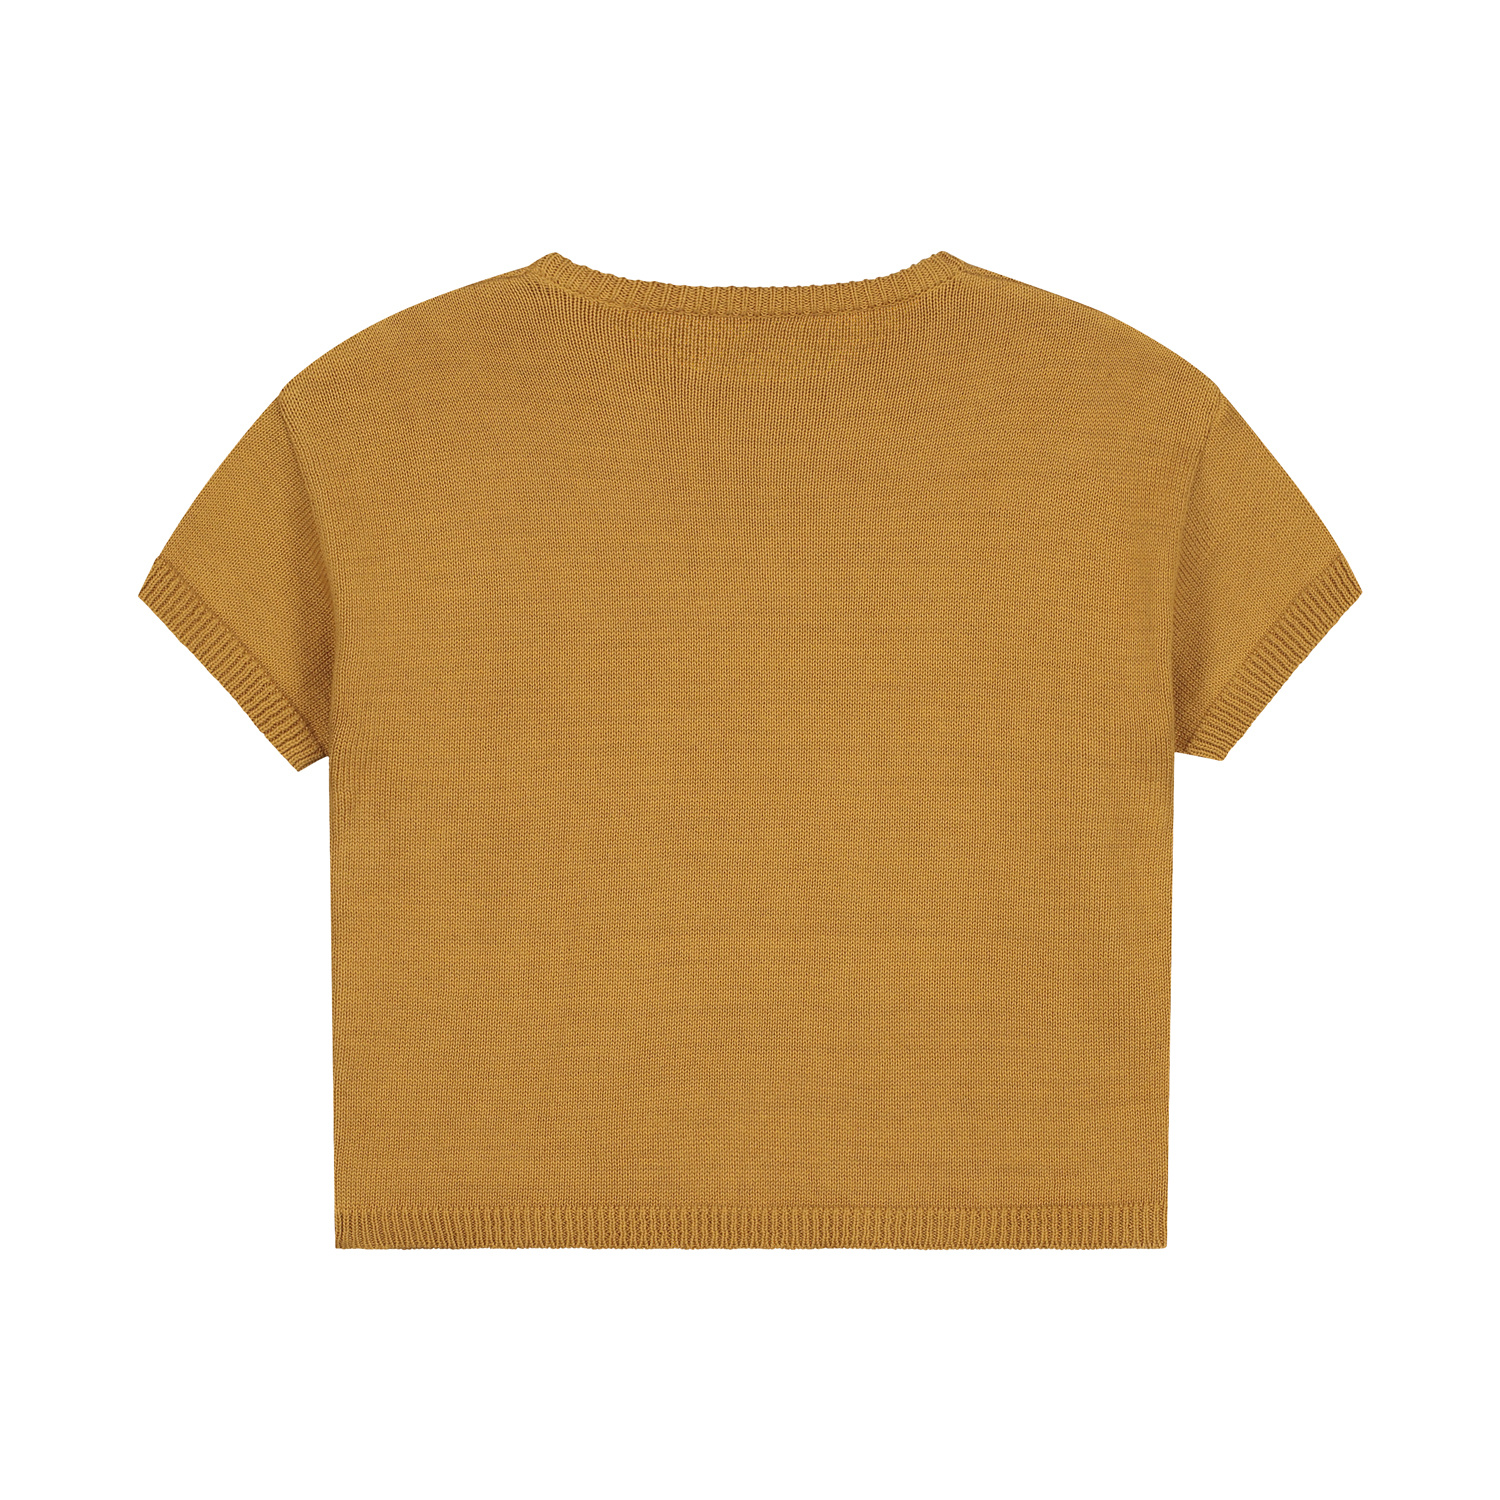 Summer knitted t-shirt sandstone-2